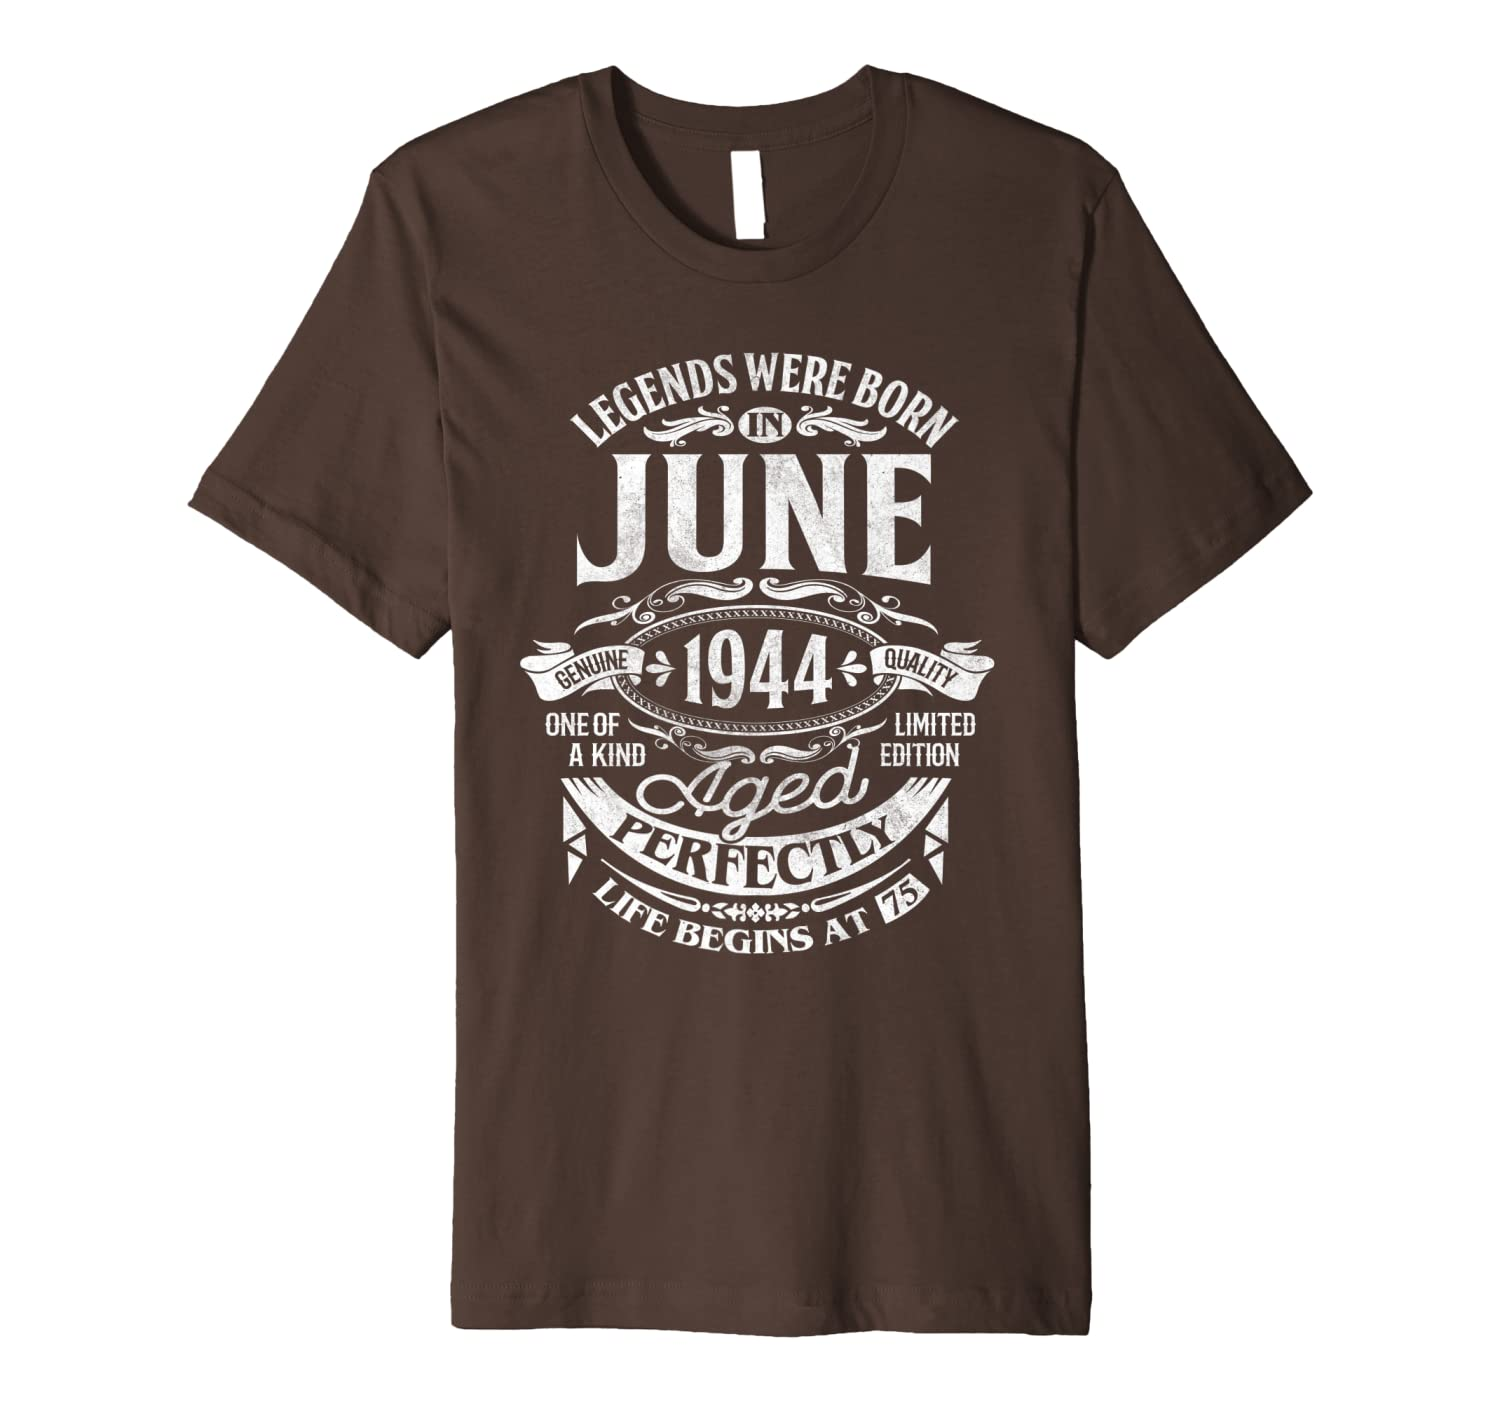 Legends Were Born In June 1944 75th Birthday Gift Shirt Premium T-Shirt Unisex Tshirt